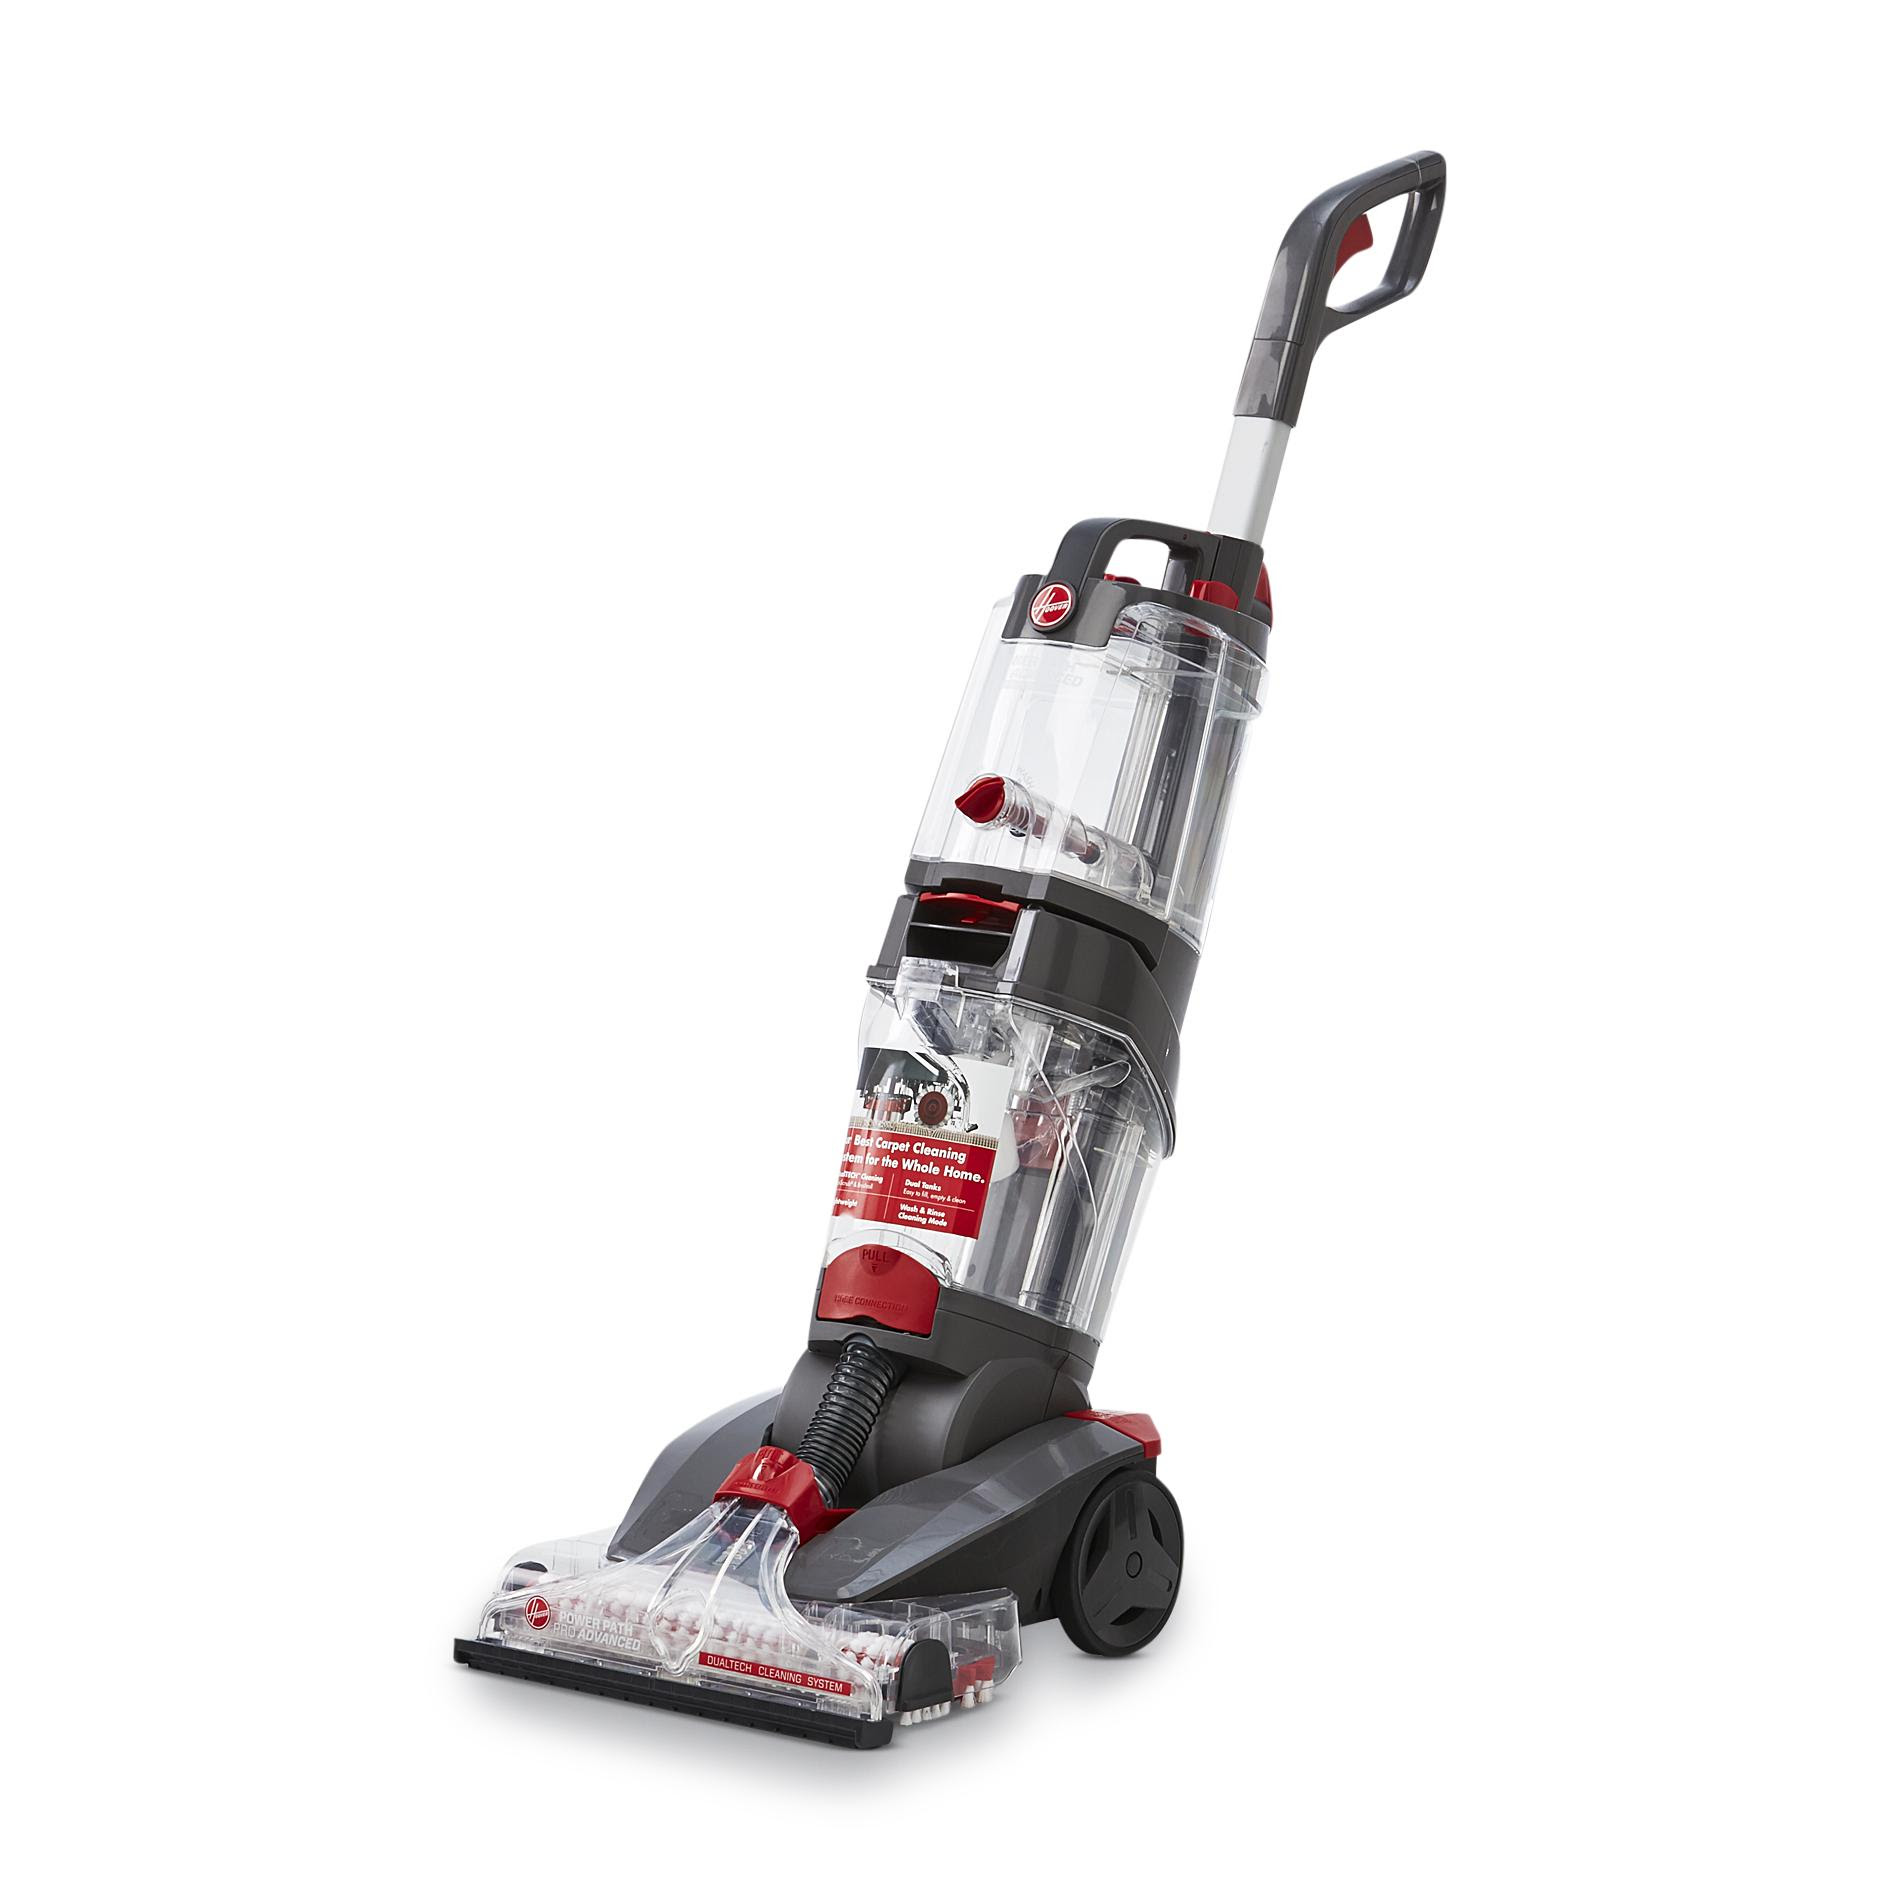 Hoover FH Power Path Pro Advanced Carpet Cleaner